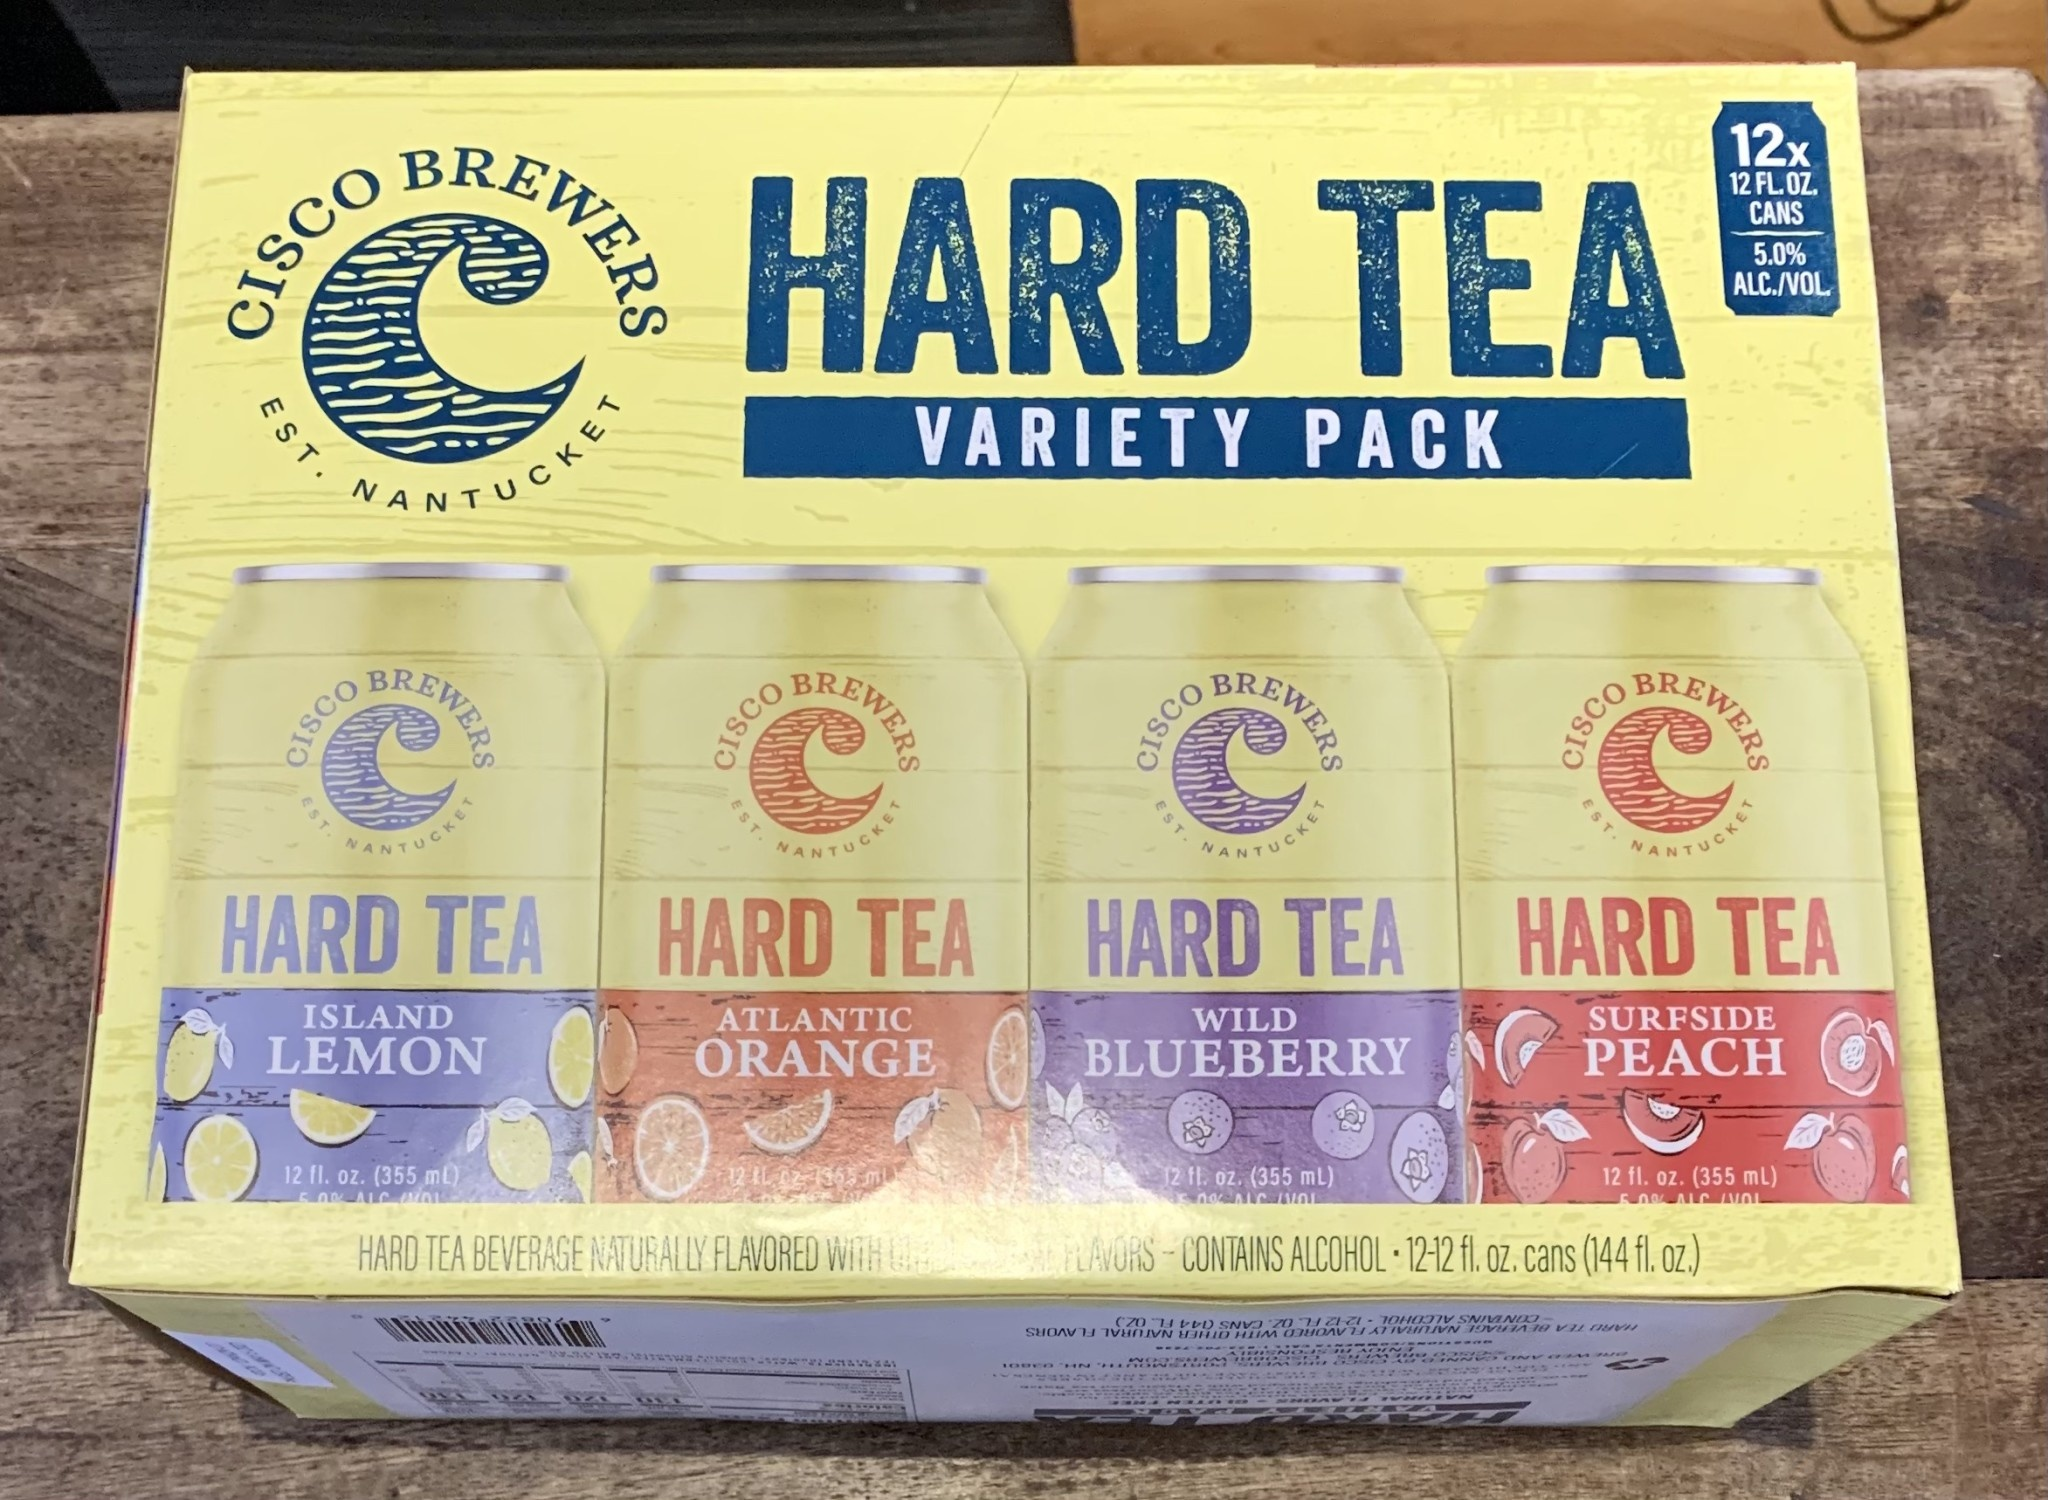 Cisco Brewers Hard Tea Variety Pack Case Cans 2/12pk - 12oz